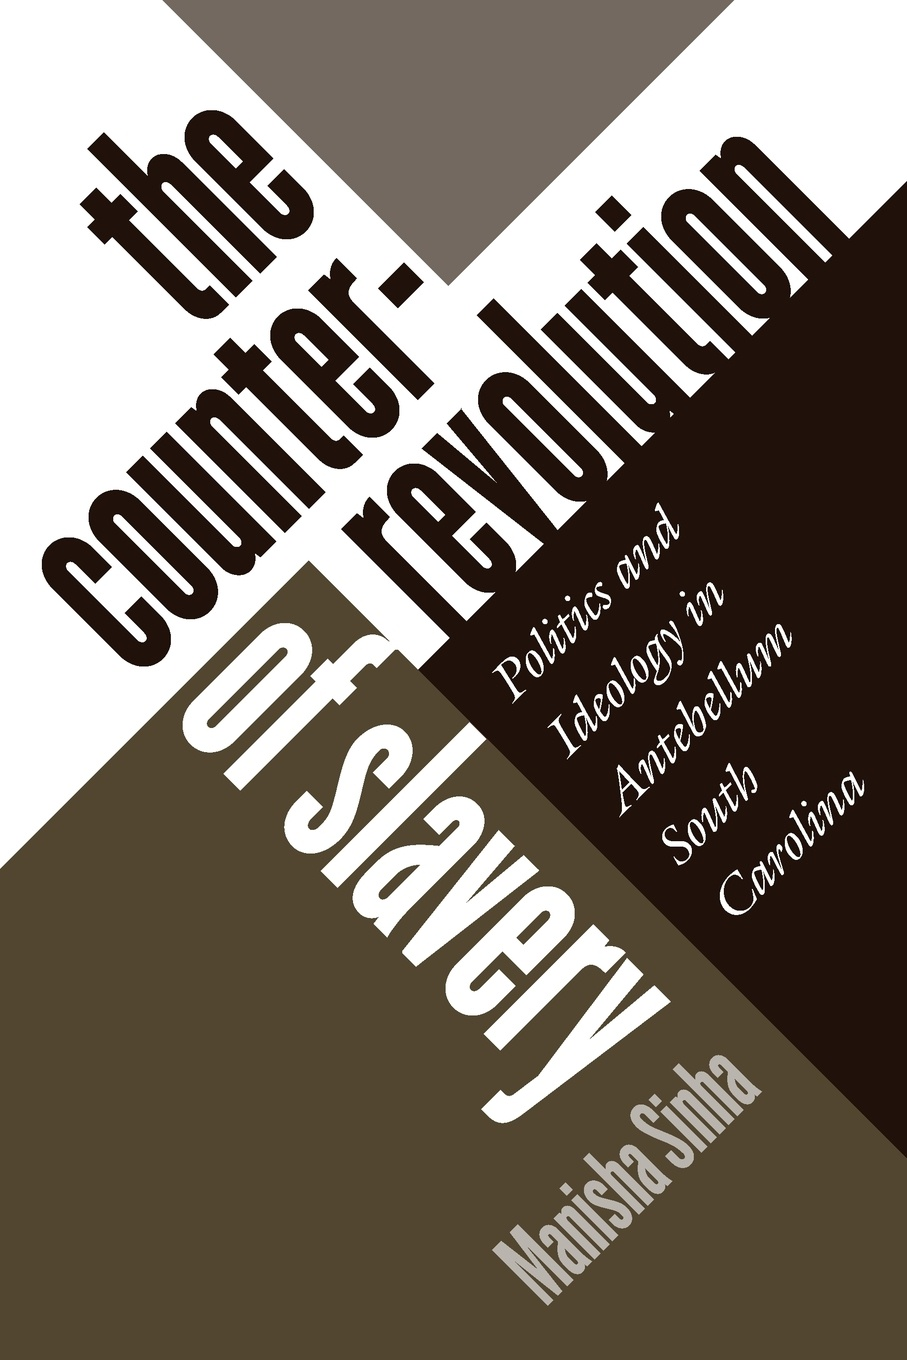 Manisha Sinha The Counterrevolution of Slavery. Politics and Ideology in Antebellum South Carolina burke o long planting and reaping albright politics ideology and interpreting the bible